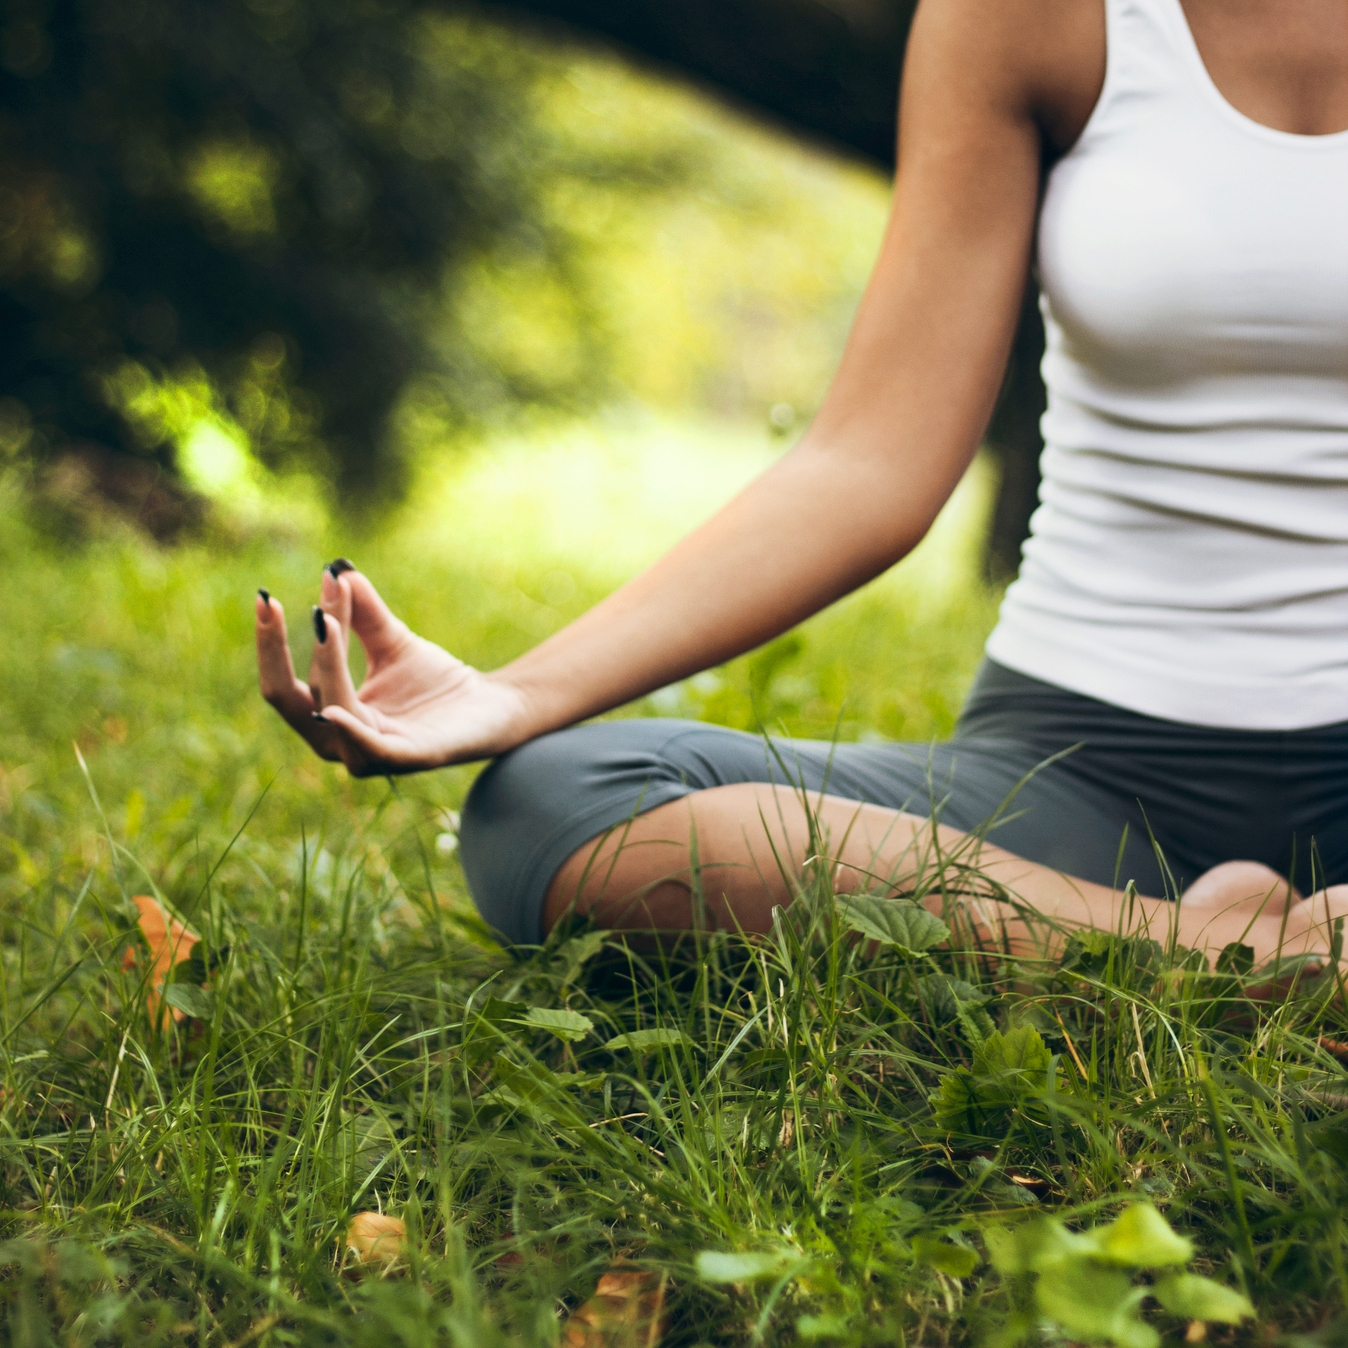 Woman practicing yoga in Lotus position in park